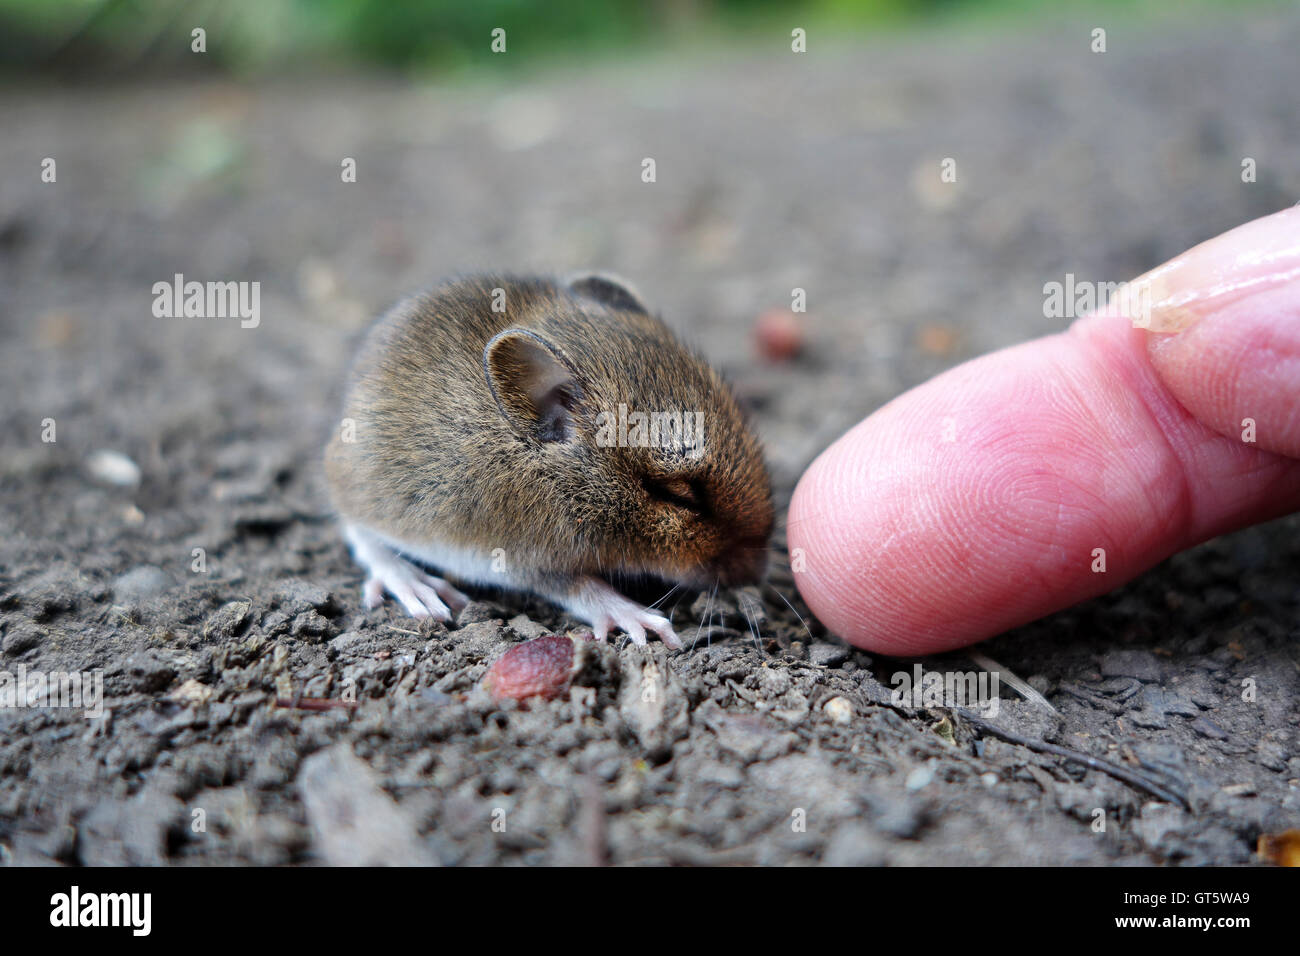 Wood or Long Tail Field Mouse sleeping being touched by human finger tip Uk - Stock Image